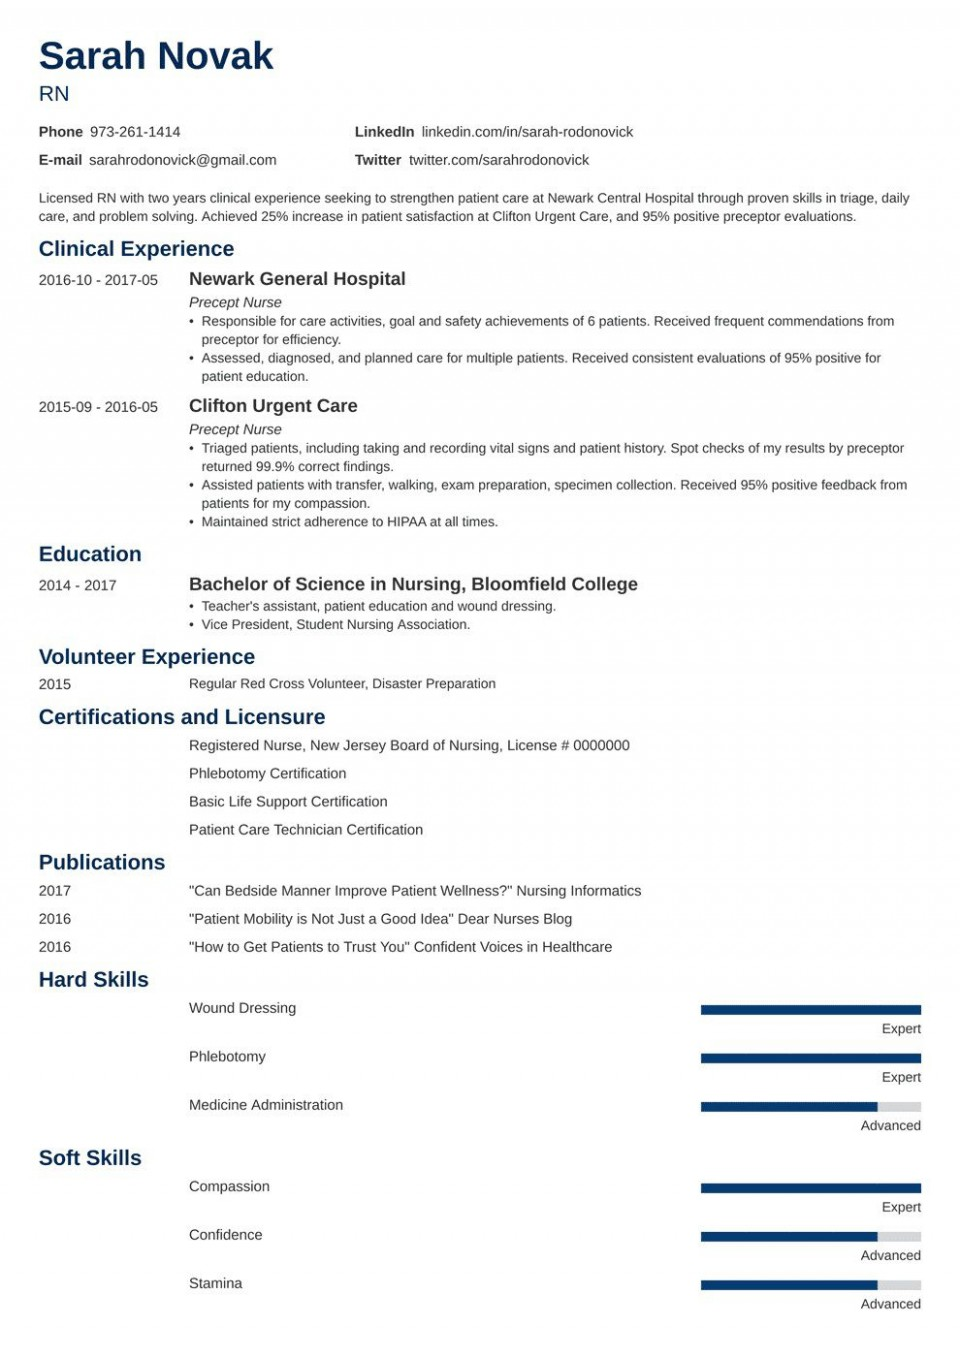 008 Impressive New Grad Nursing Resume Template Example  Graduate Nurse Practitioner960